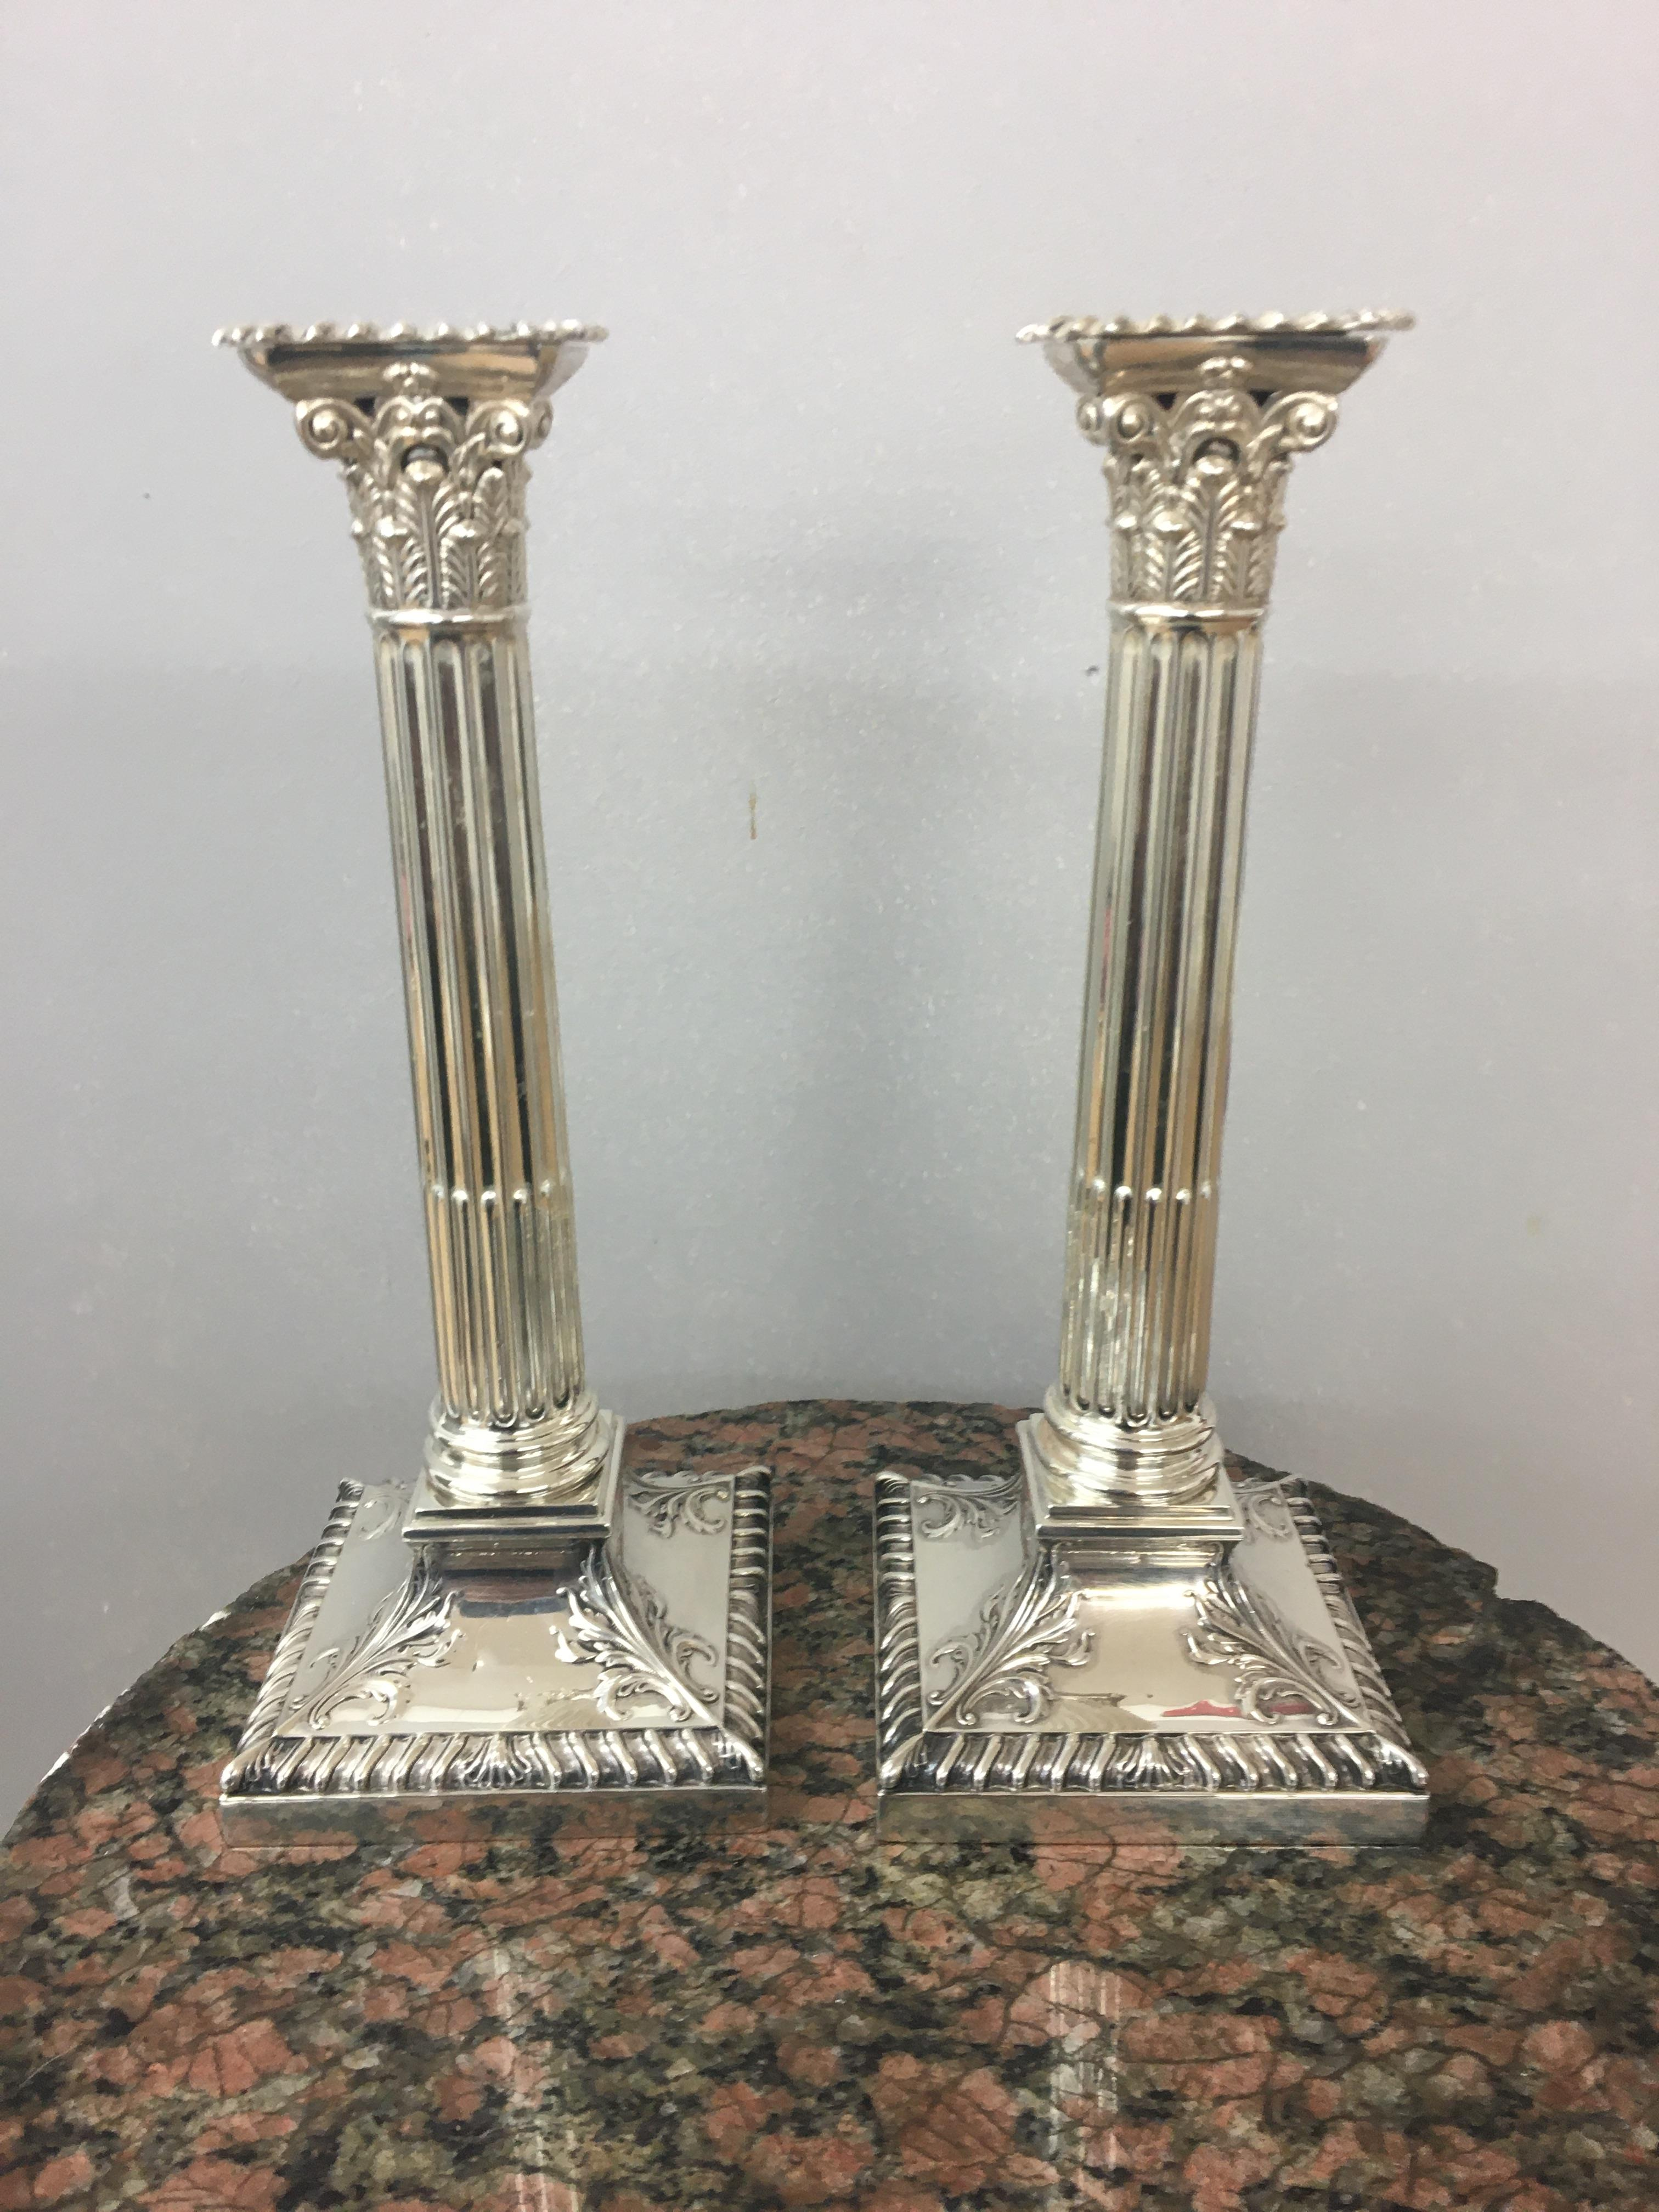 Edwardian silver Corinthian candlesticks, Sheffield, 1908, Hawksworth Eyre and co. height 24cm. - Image 2 of 4